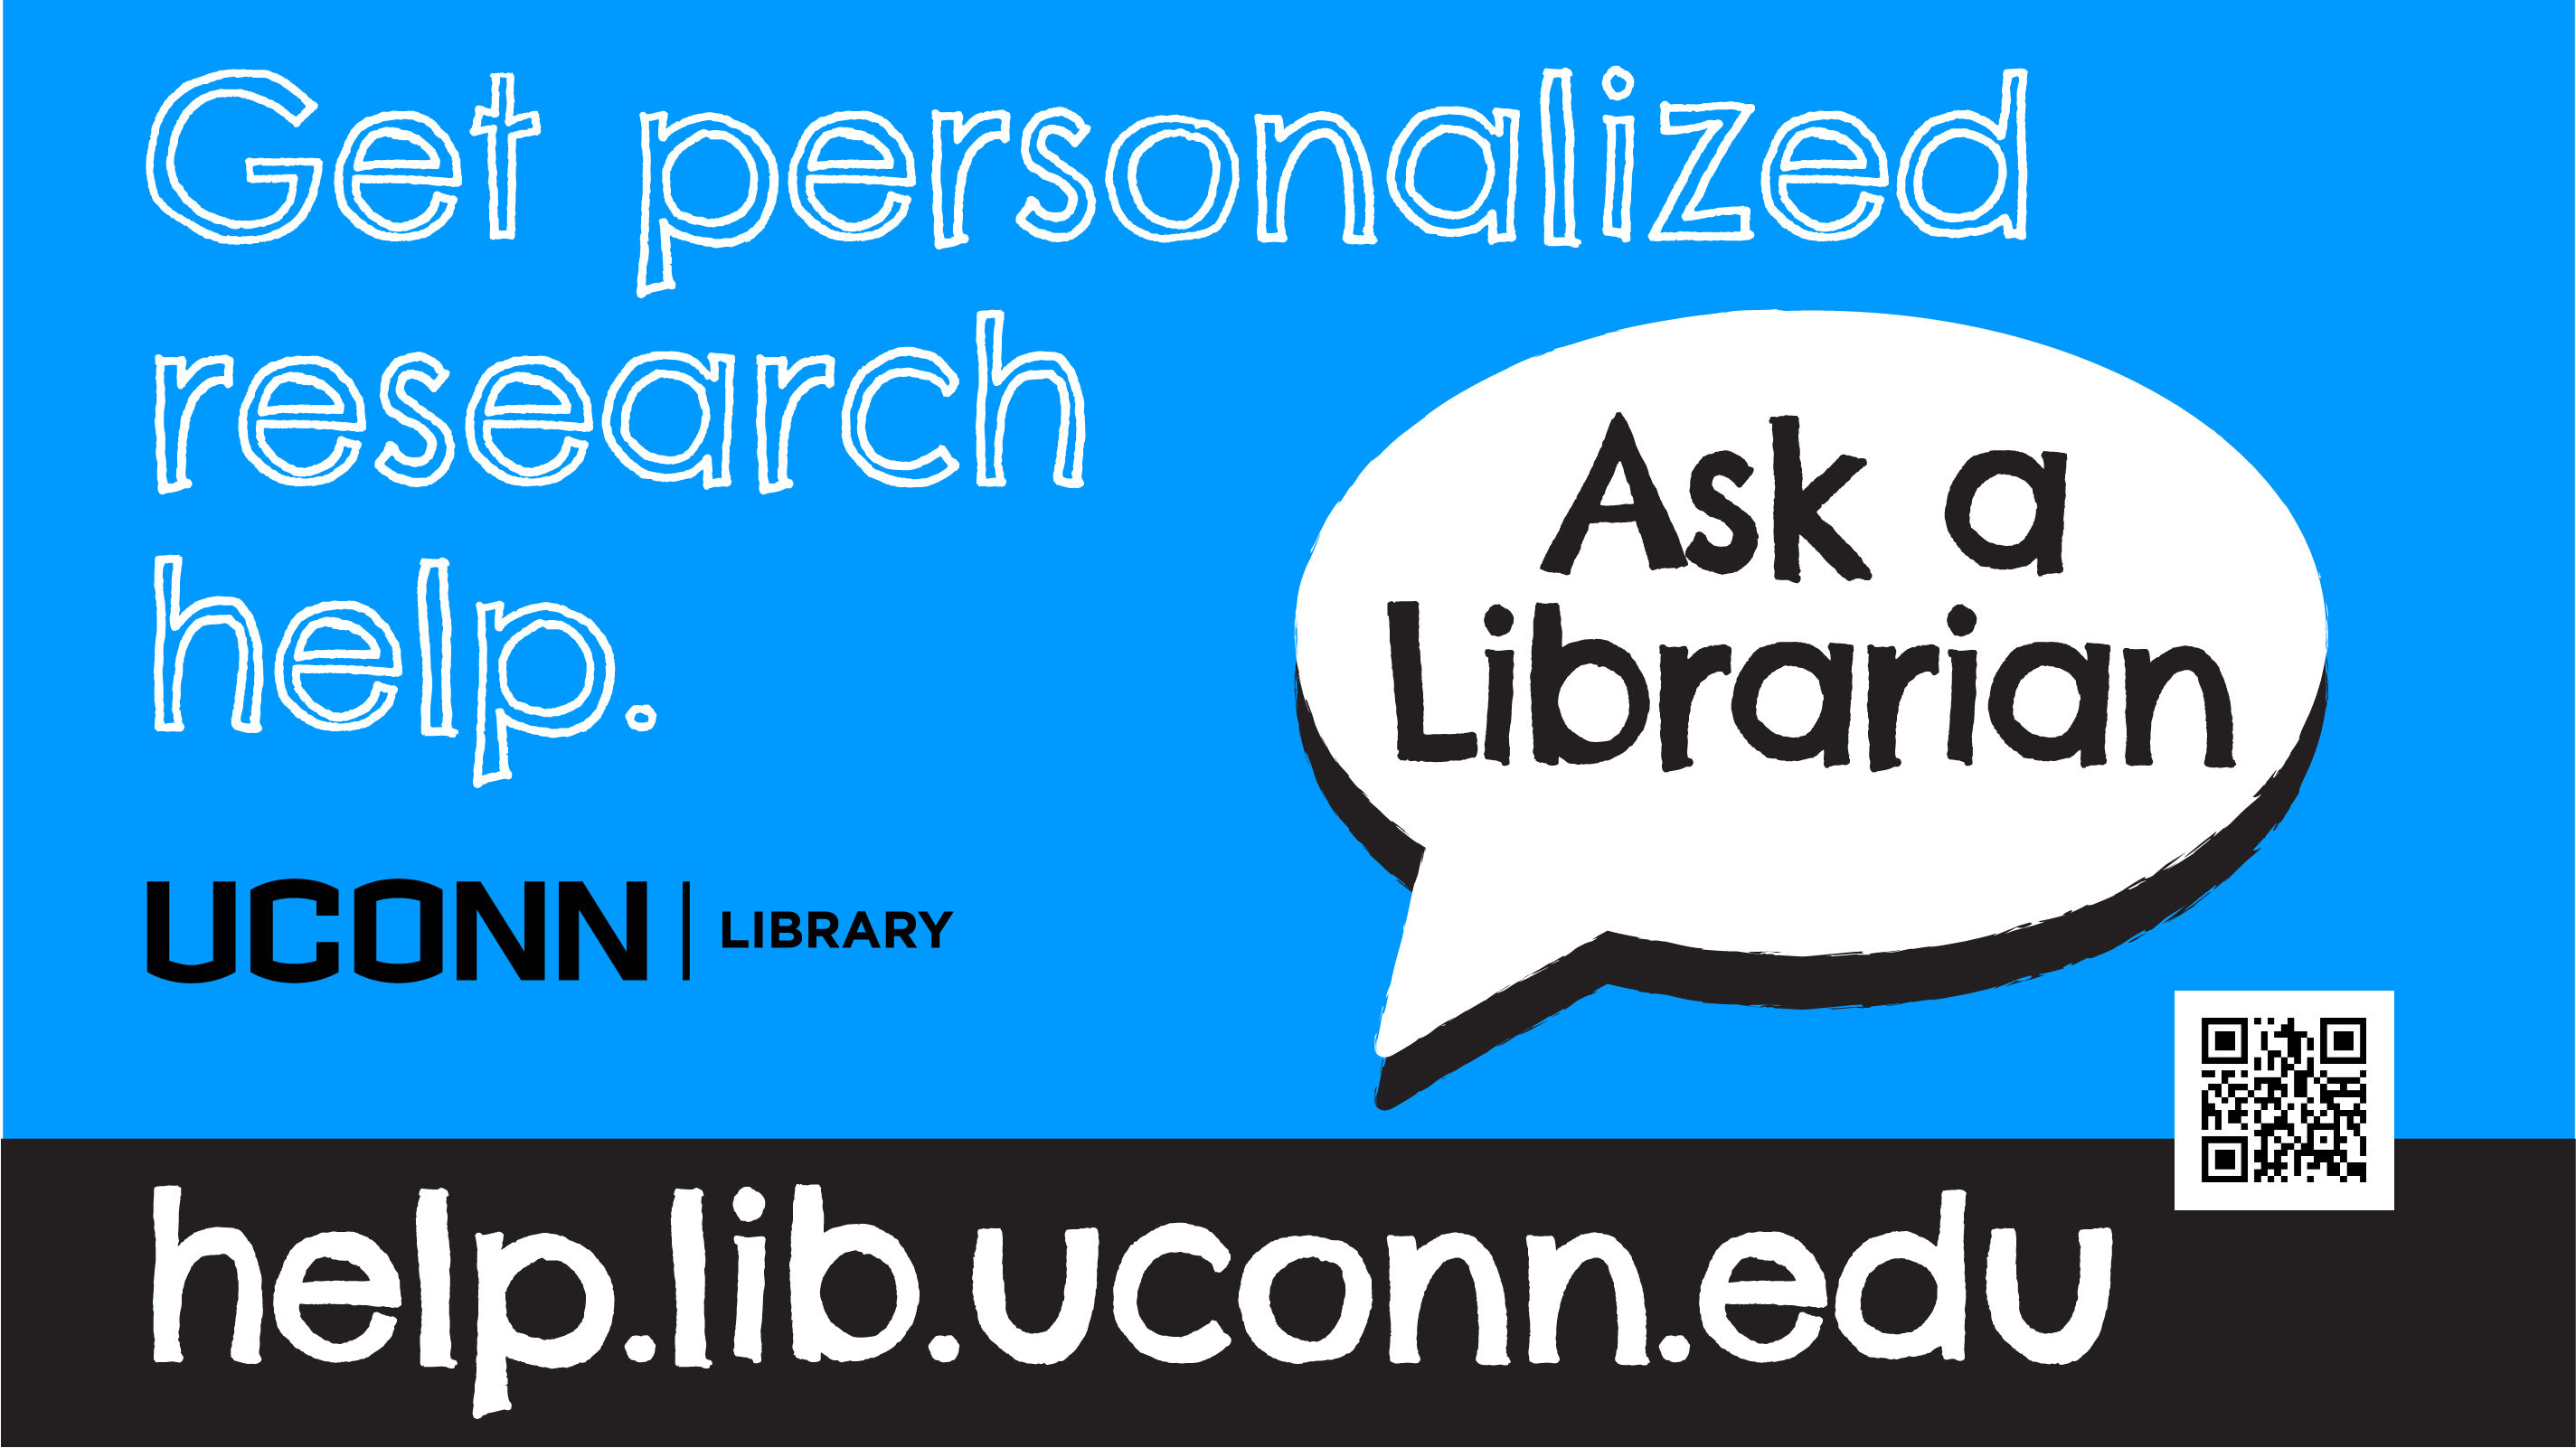 Get personalized research help. Ask a Librarian. help.lib.uconn.edu